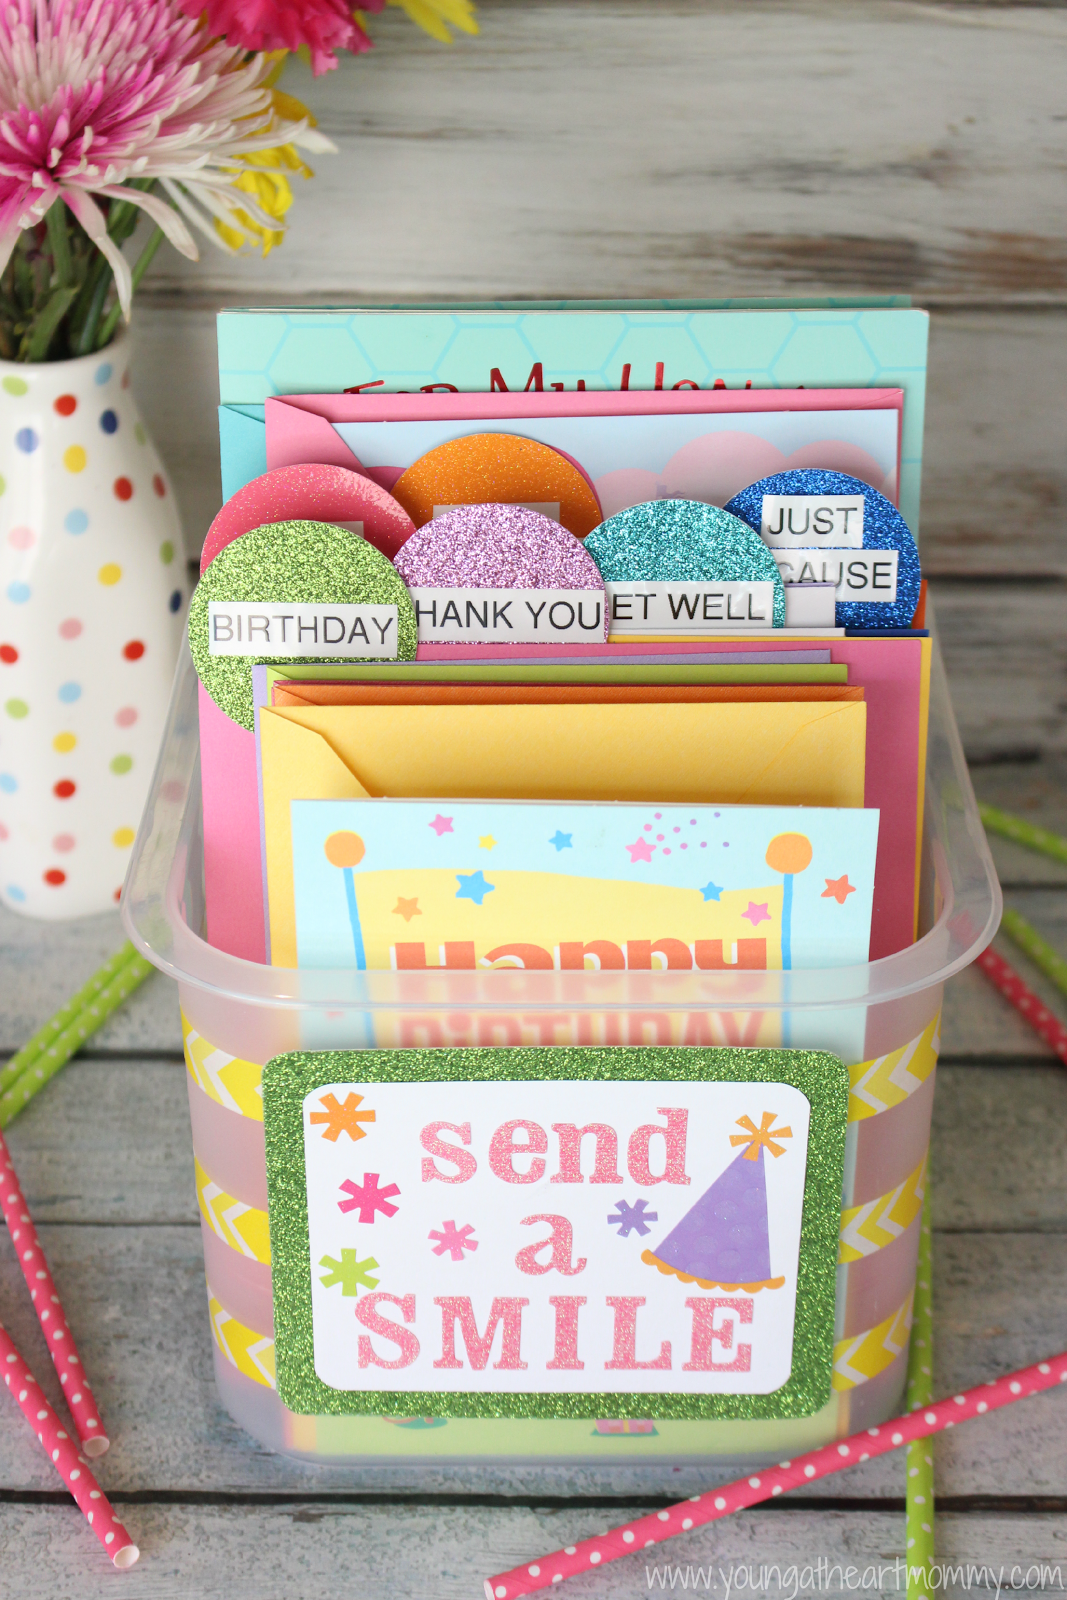 Send a smile with hallmark diy greeting card organizer young send a smile with hallmark diy greeting card organizer young at heart mommy kristyandbryce Images